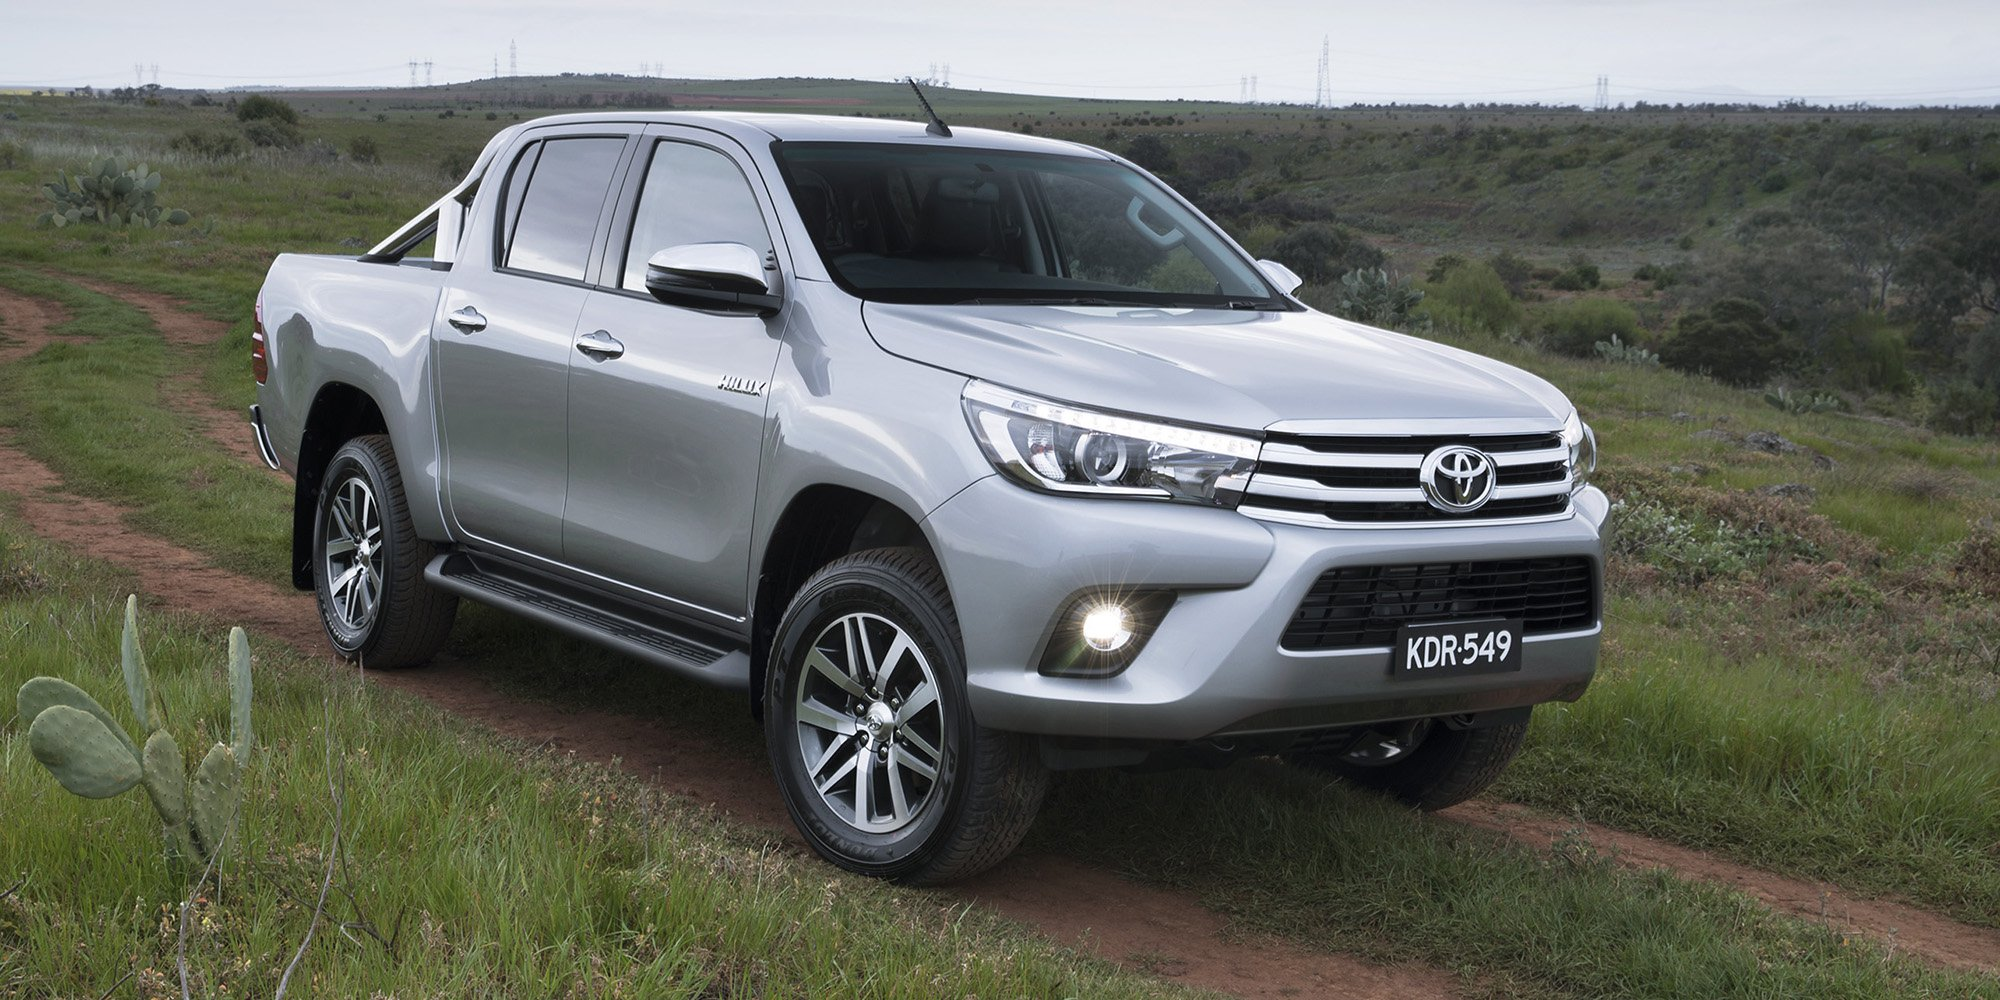 Toyota hilux photo - 3